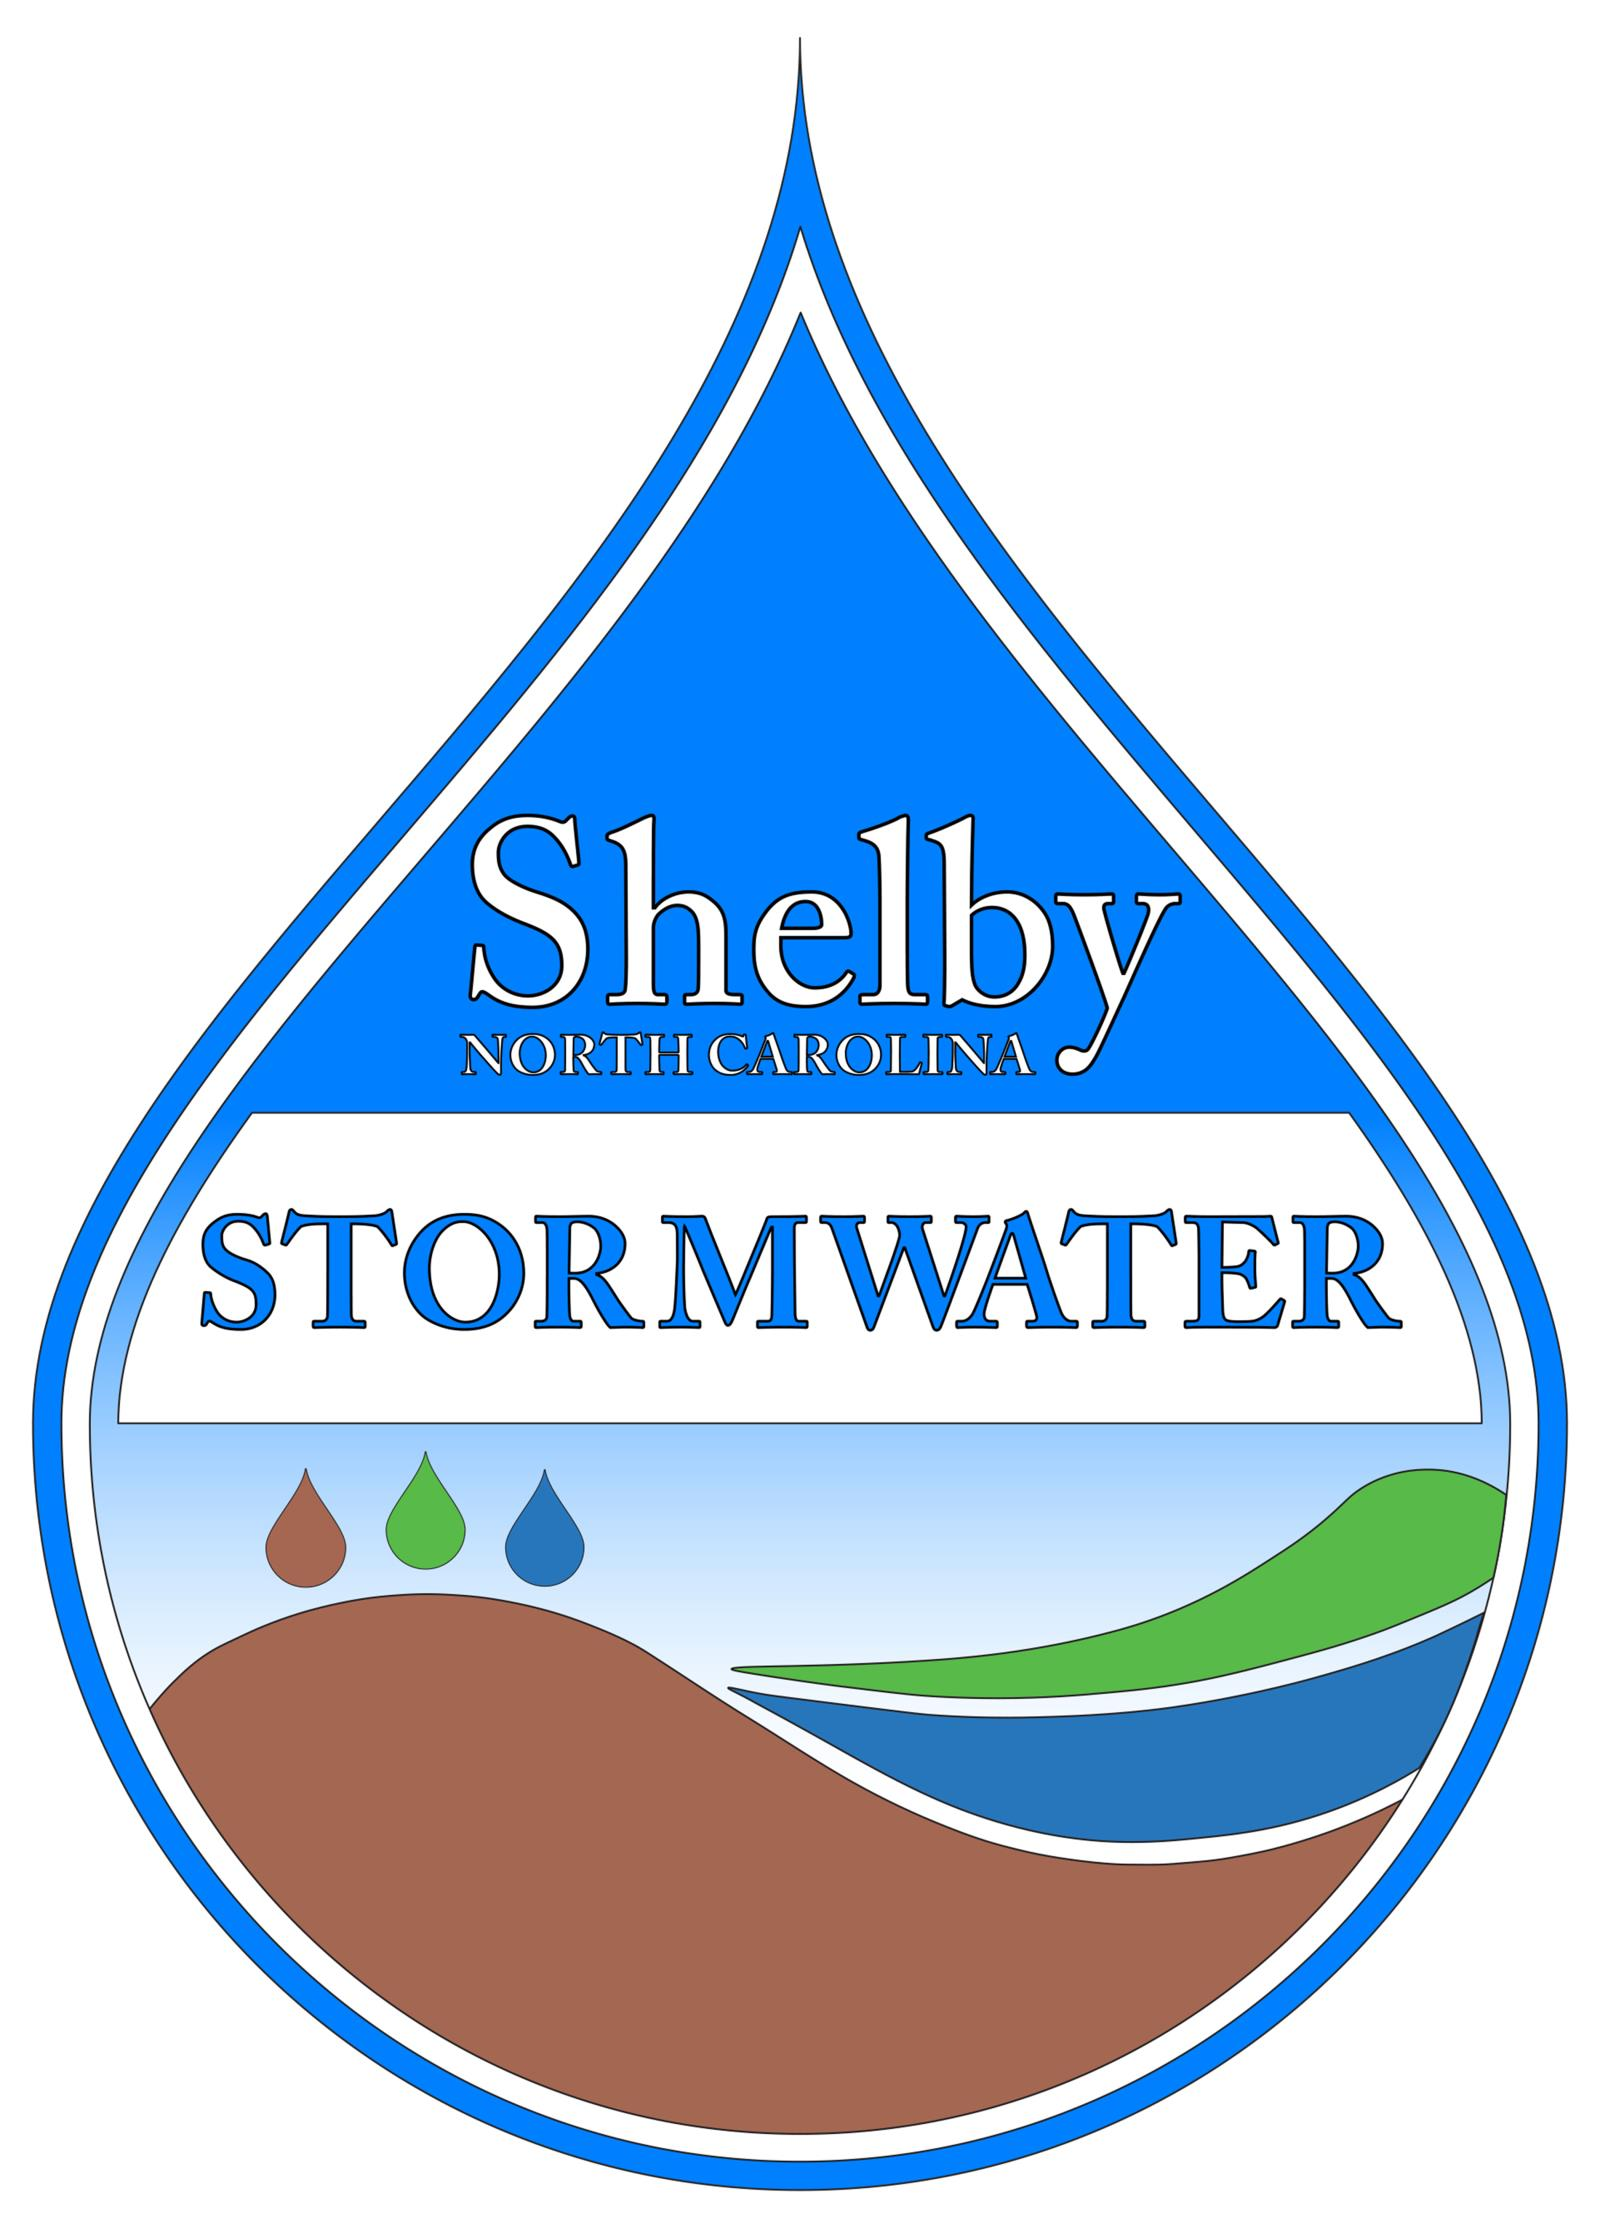 Complete Stormwater Logo 2018